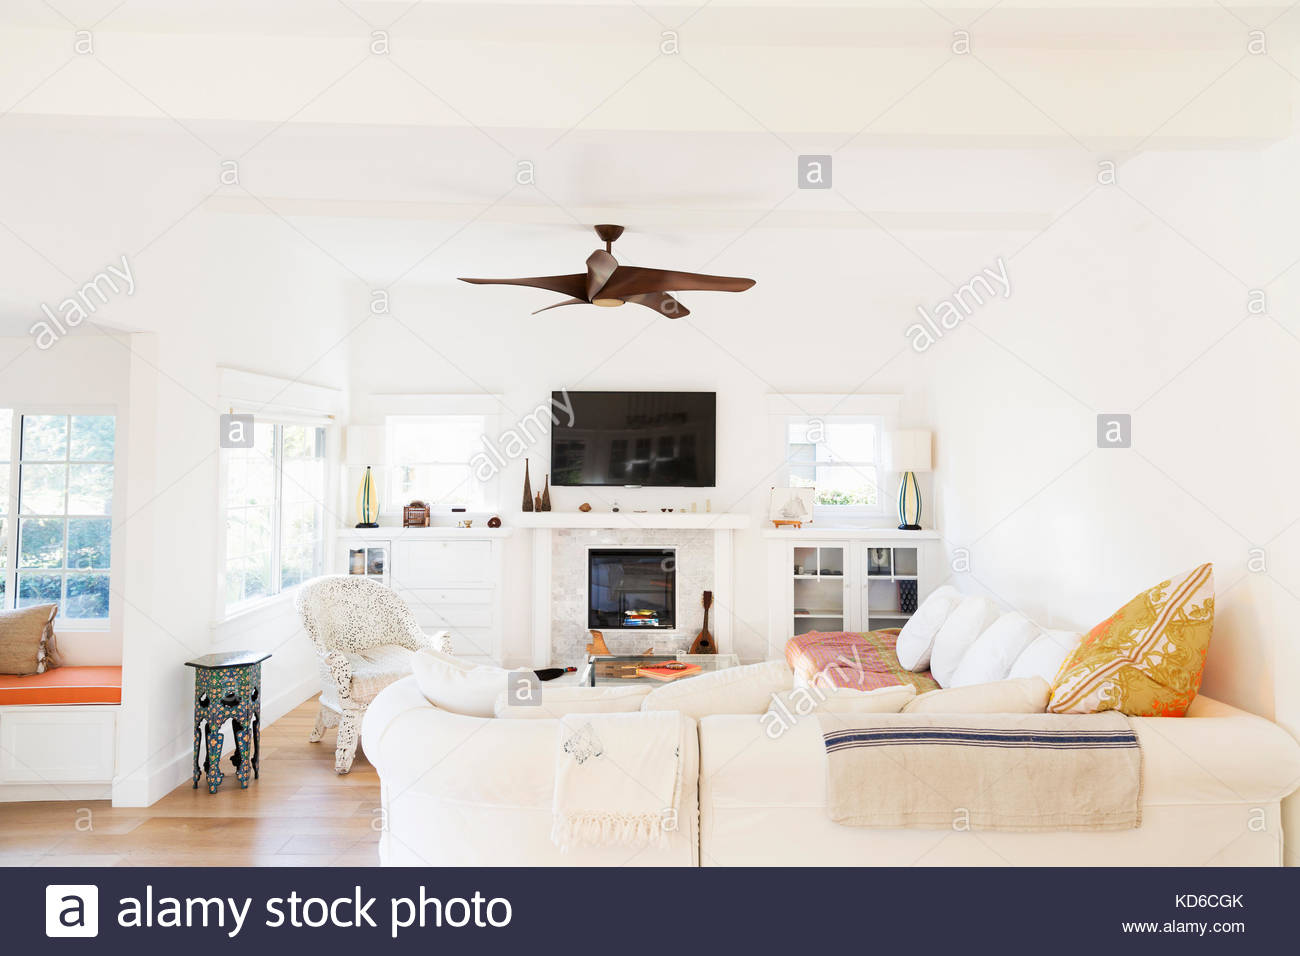 Ceiling Fan Stock Photos & Ceiling Fan Stock Images - Alamy